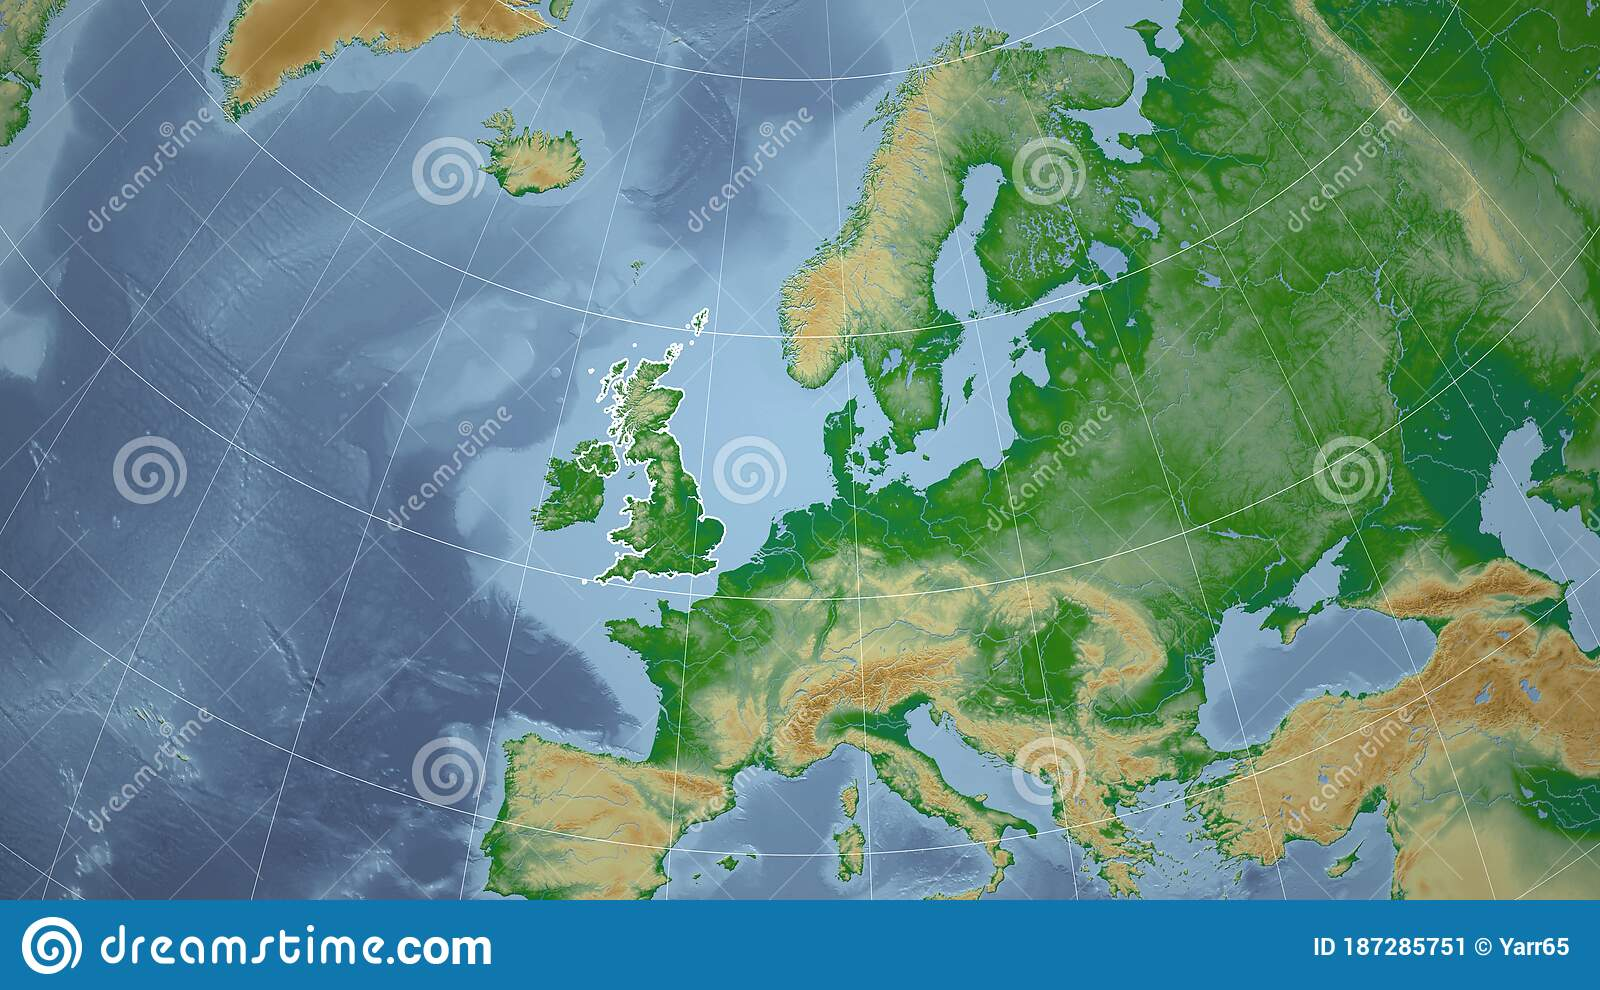 Picture of: United Kingdom Physical Neighborhood Outline Stock Illustration Illustration Of Isolated Surface 187285751